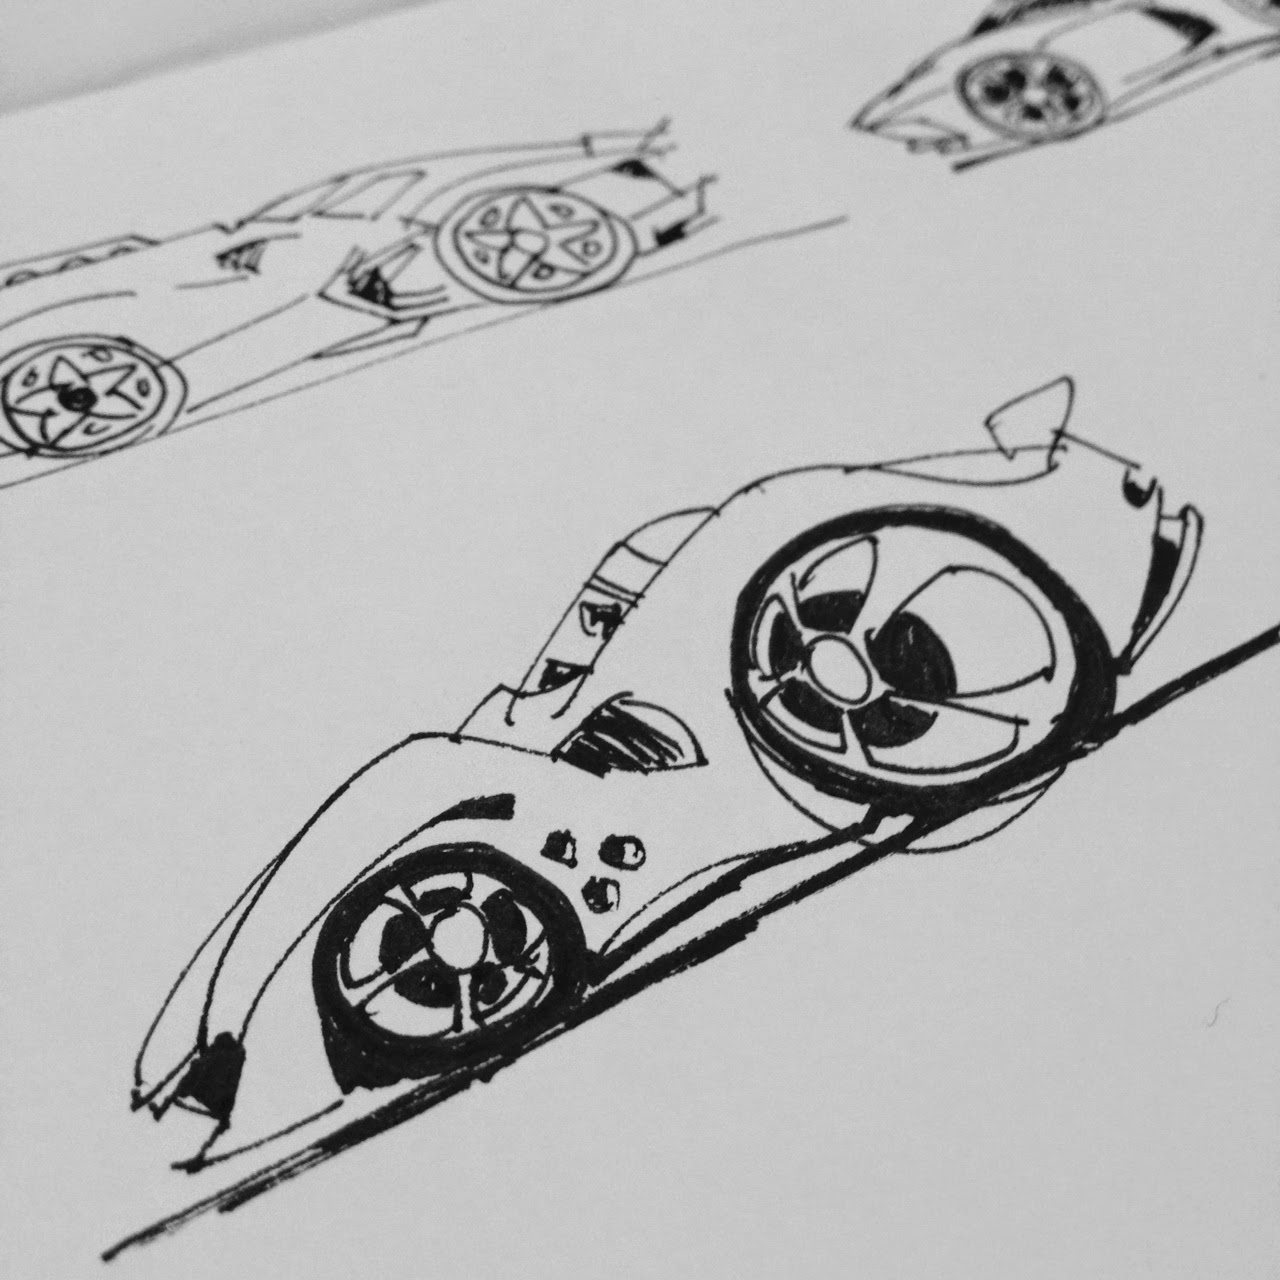 WeirdSketchBlog: Cars and one point perspective interior sketches